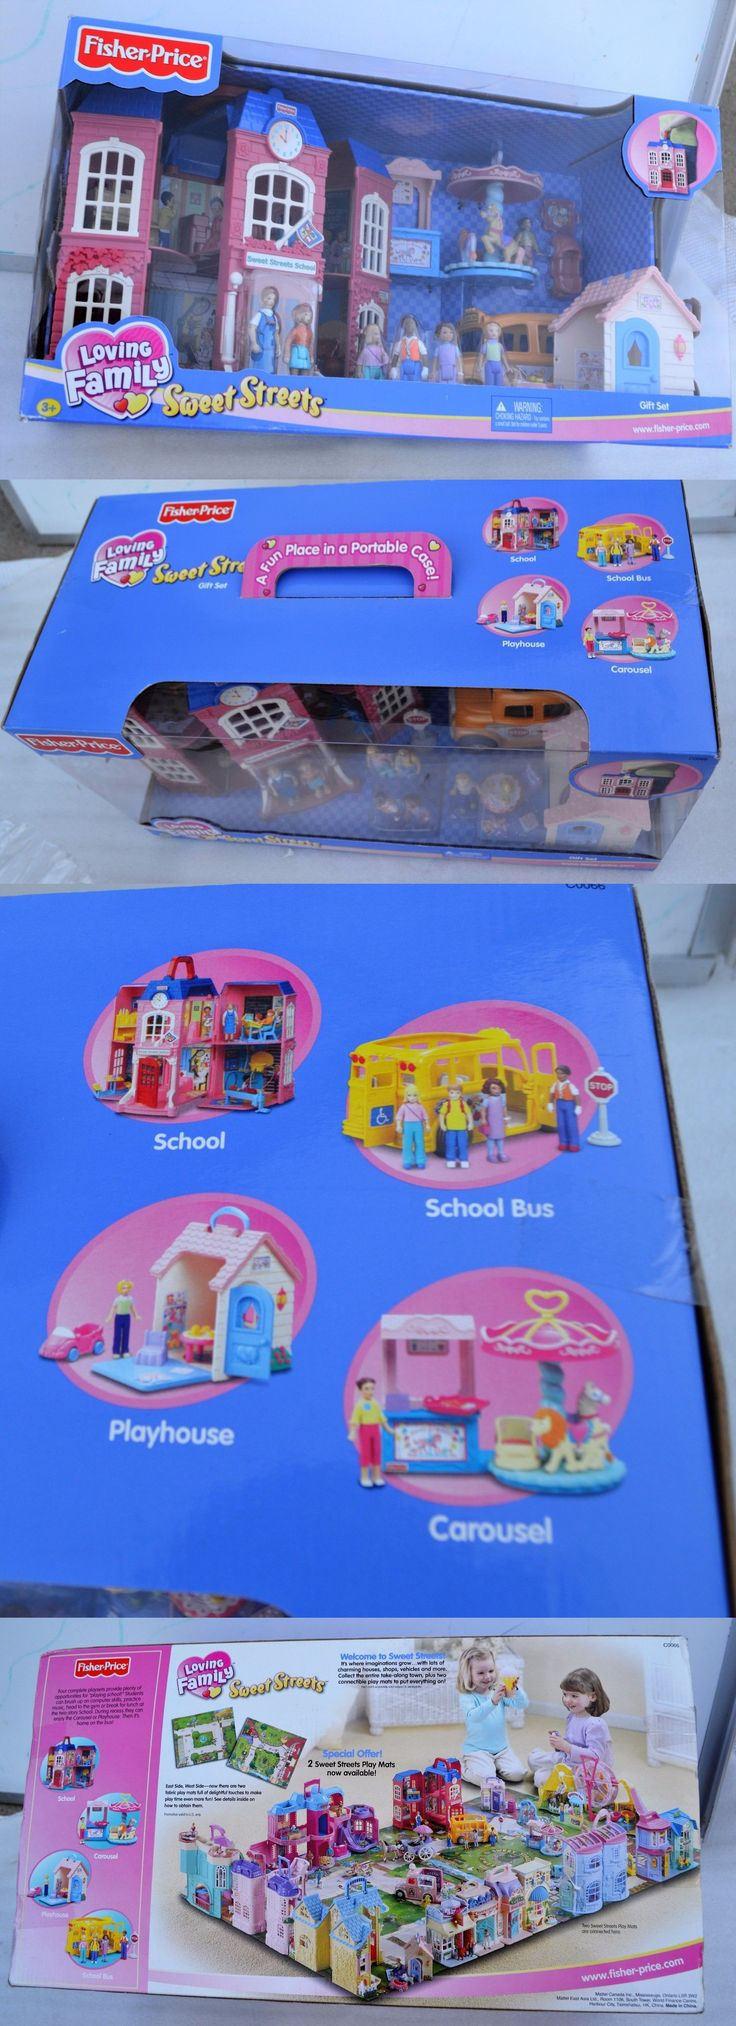 Dollhouses 20898: New 2003 Fisher Price Loving Family Sweet Streets Gift Set School Bus Playhouse -> BUY IT NOW ONLY: $199.95 on eBay!